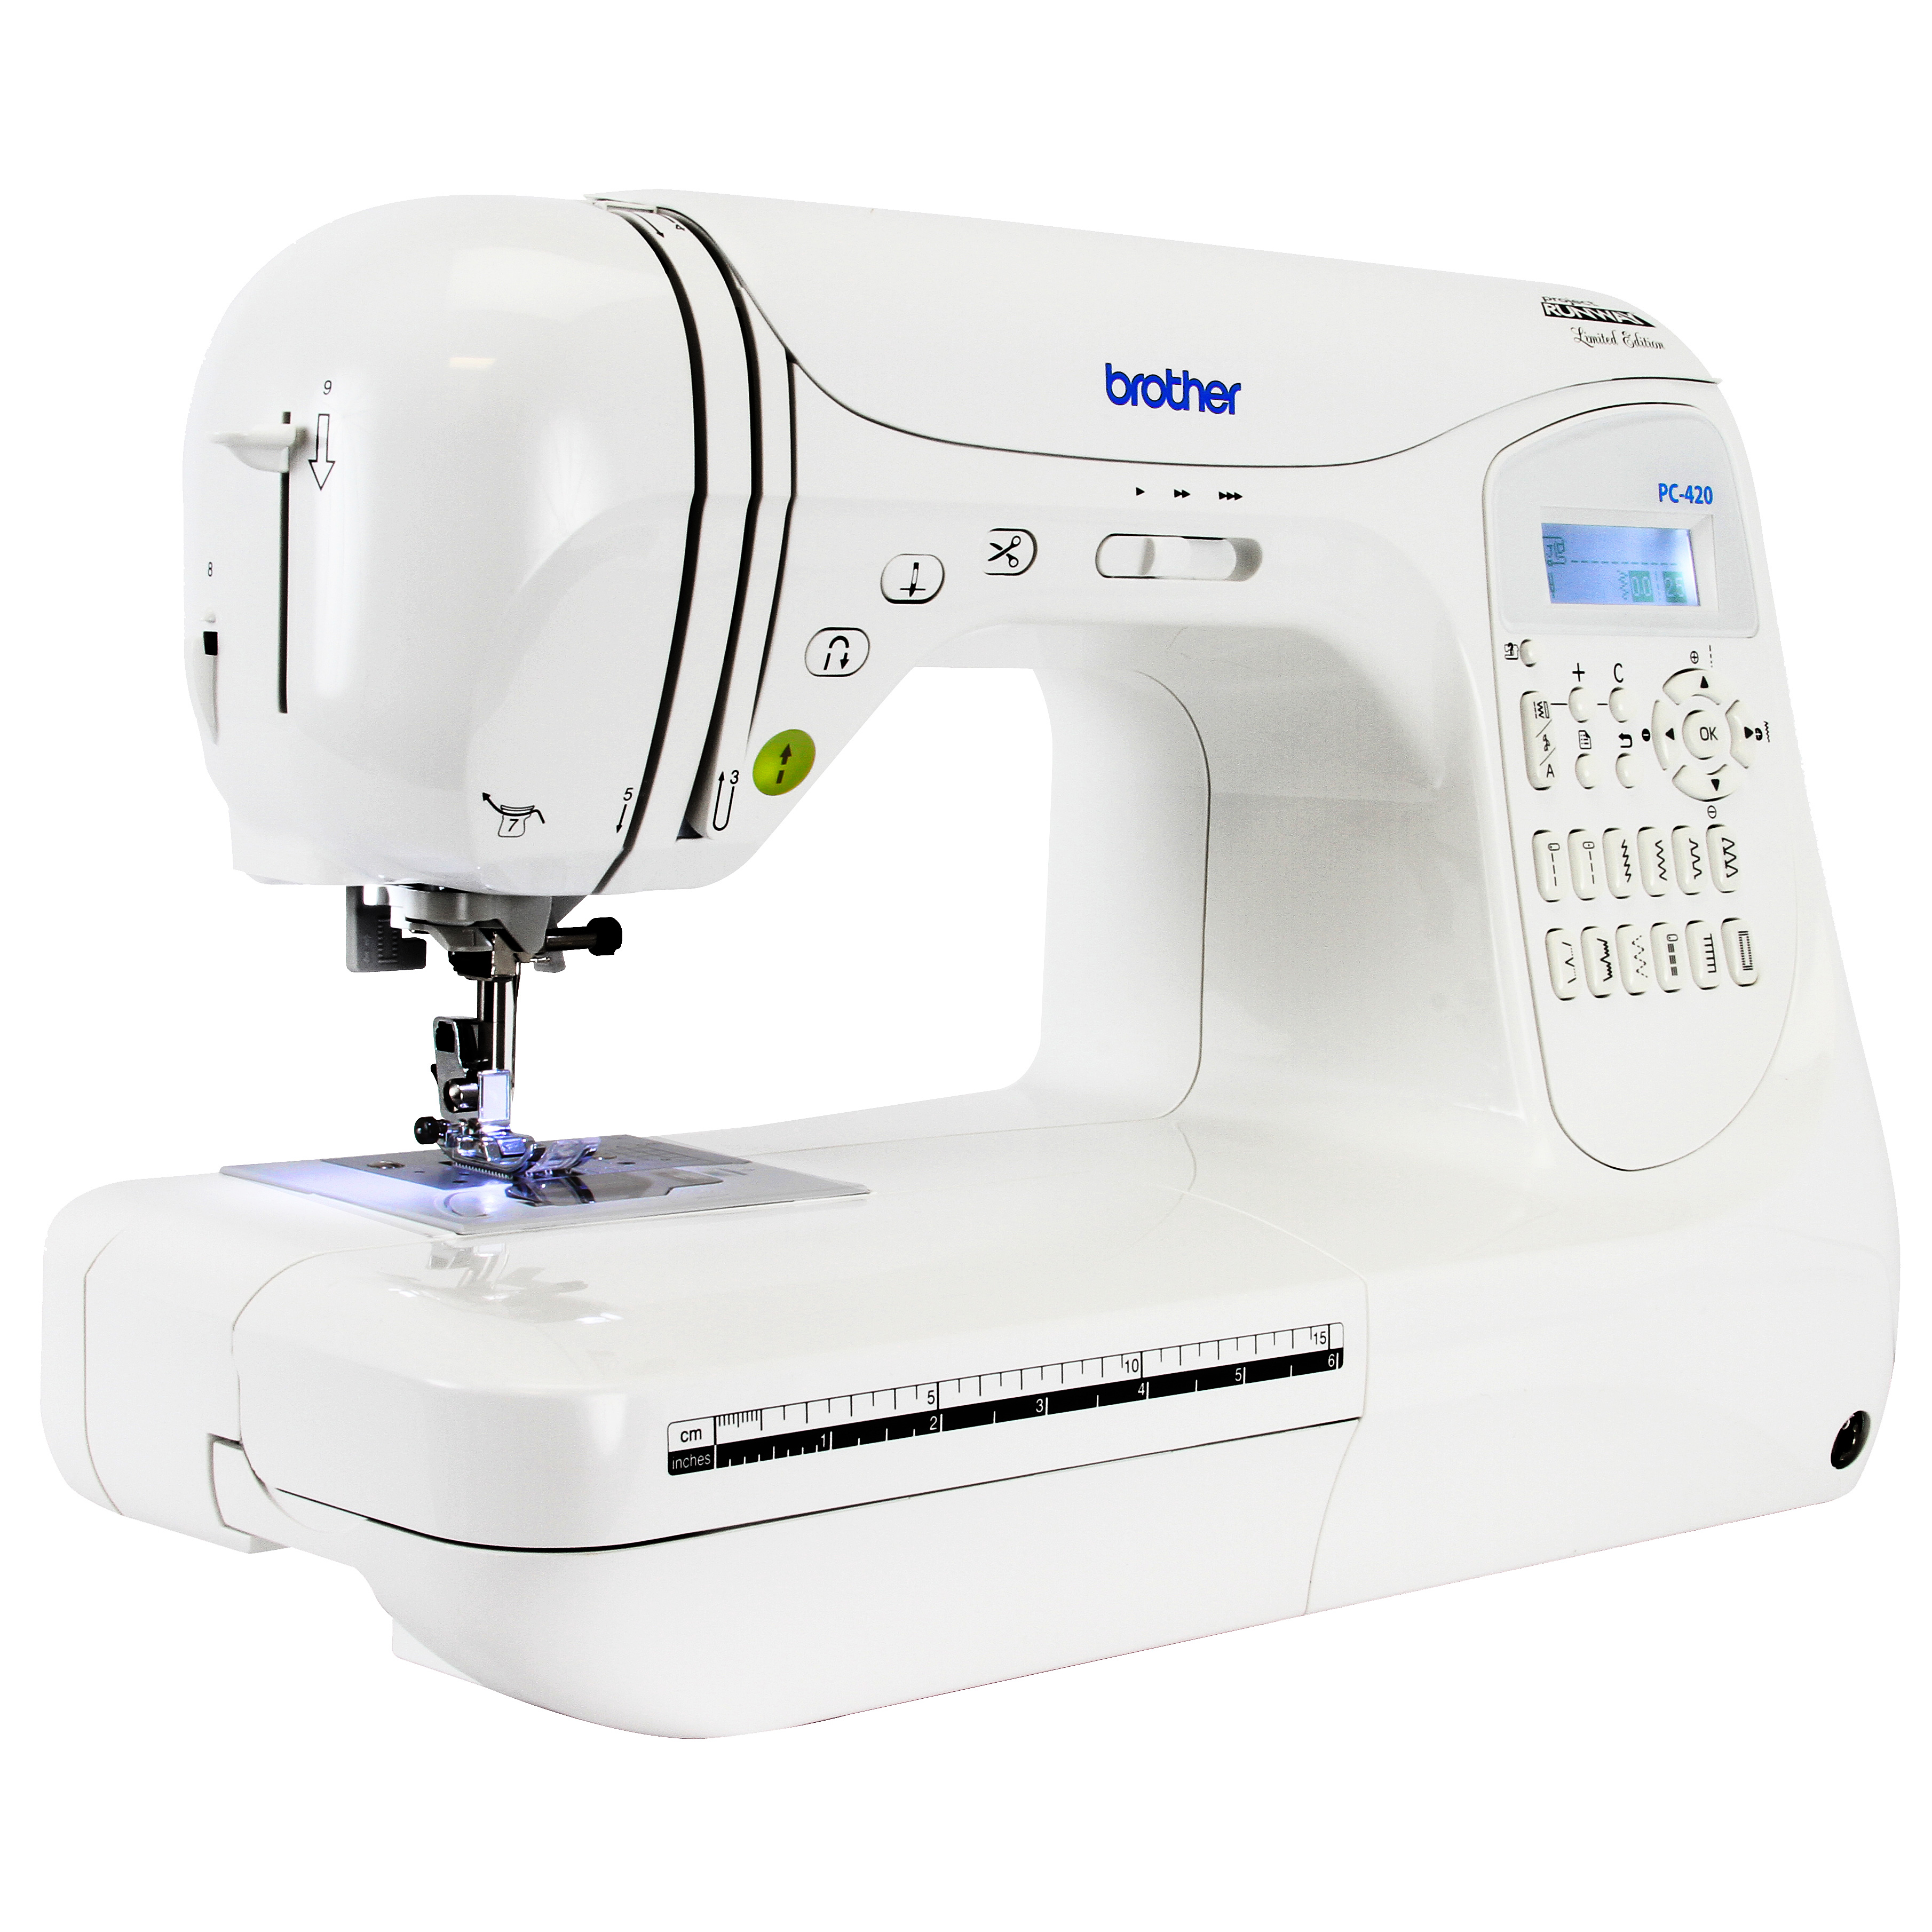 Refurbished Brother PC420- PRW Project Runway Computerized Sewing Machine